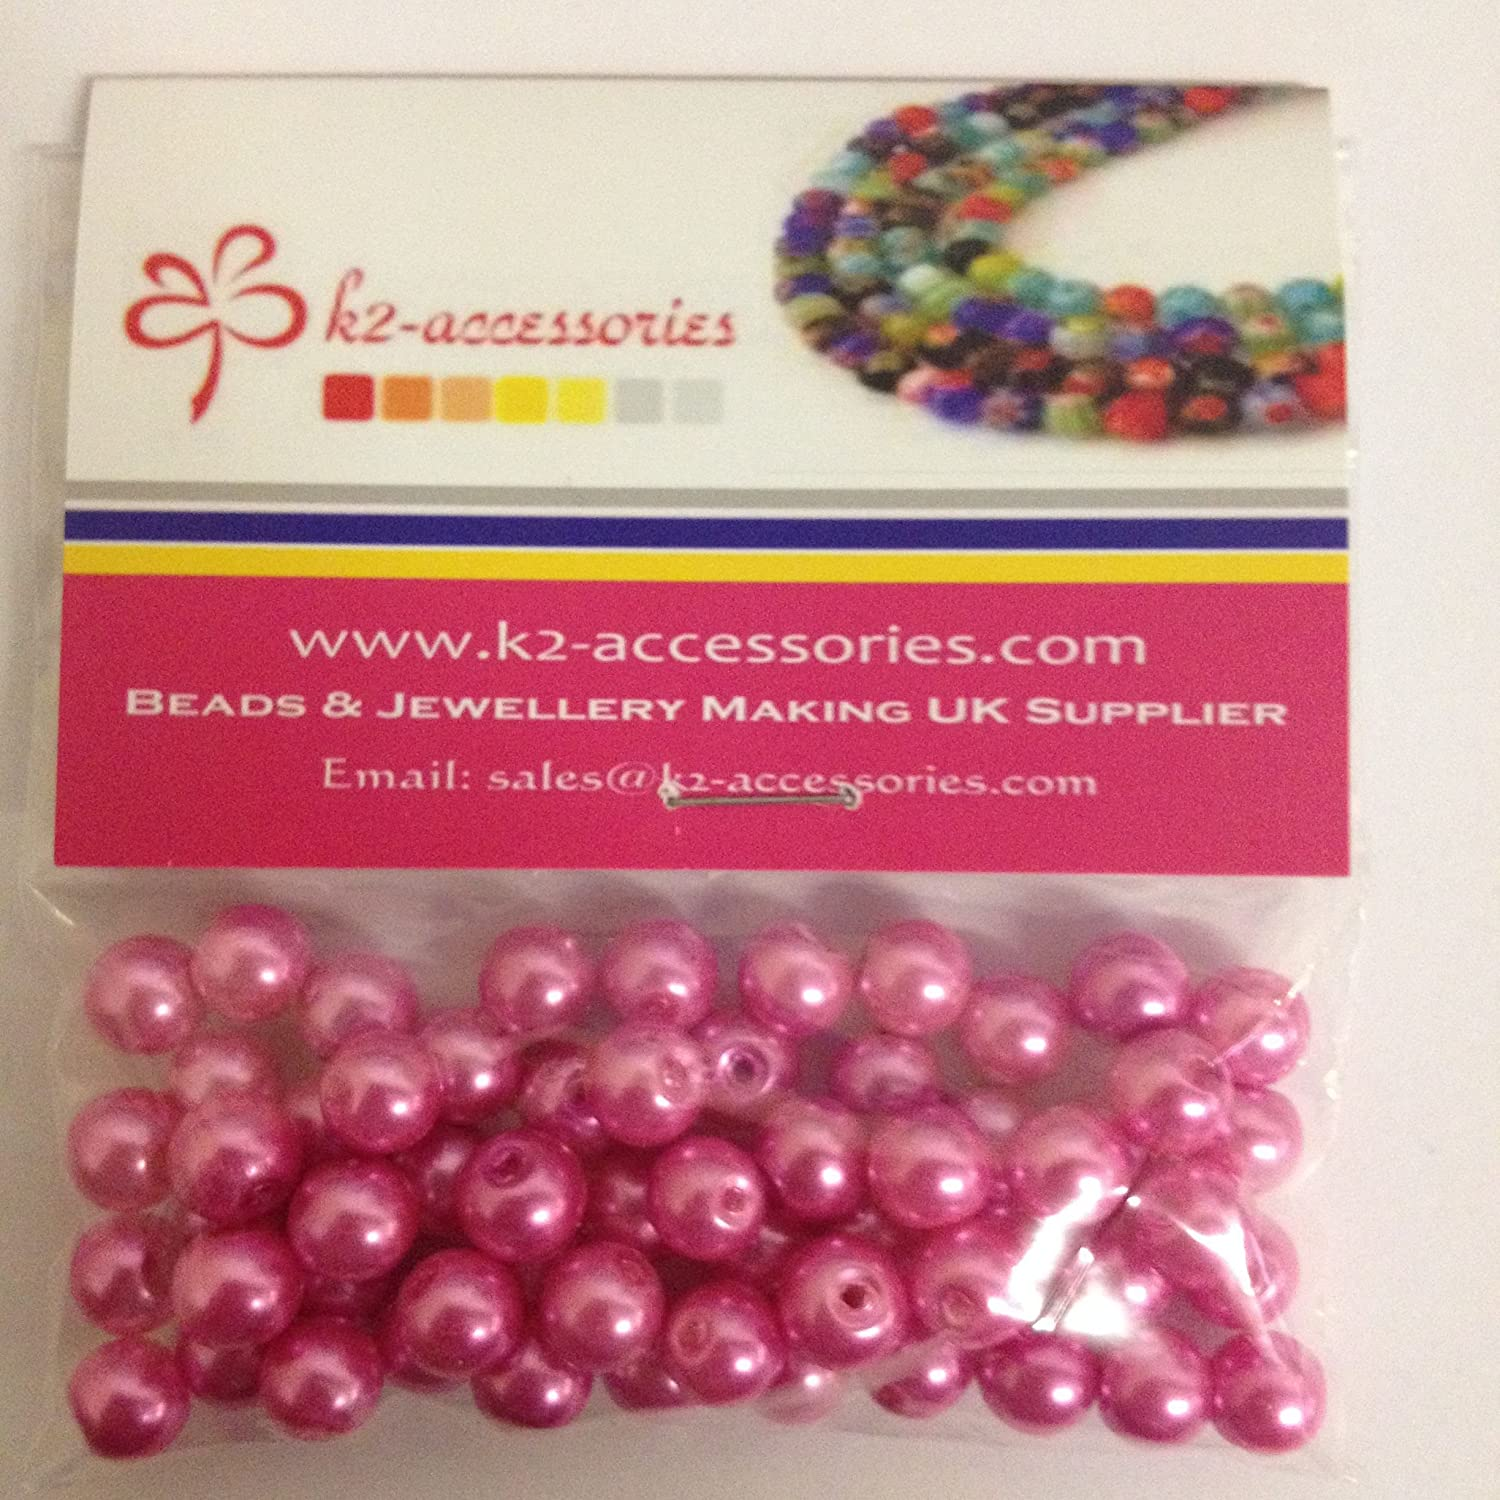 100 pieces 8mm Glass Pearl Beads - Fuchsia Pink - A1020 k2-accessories